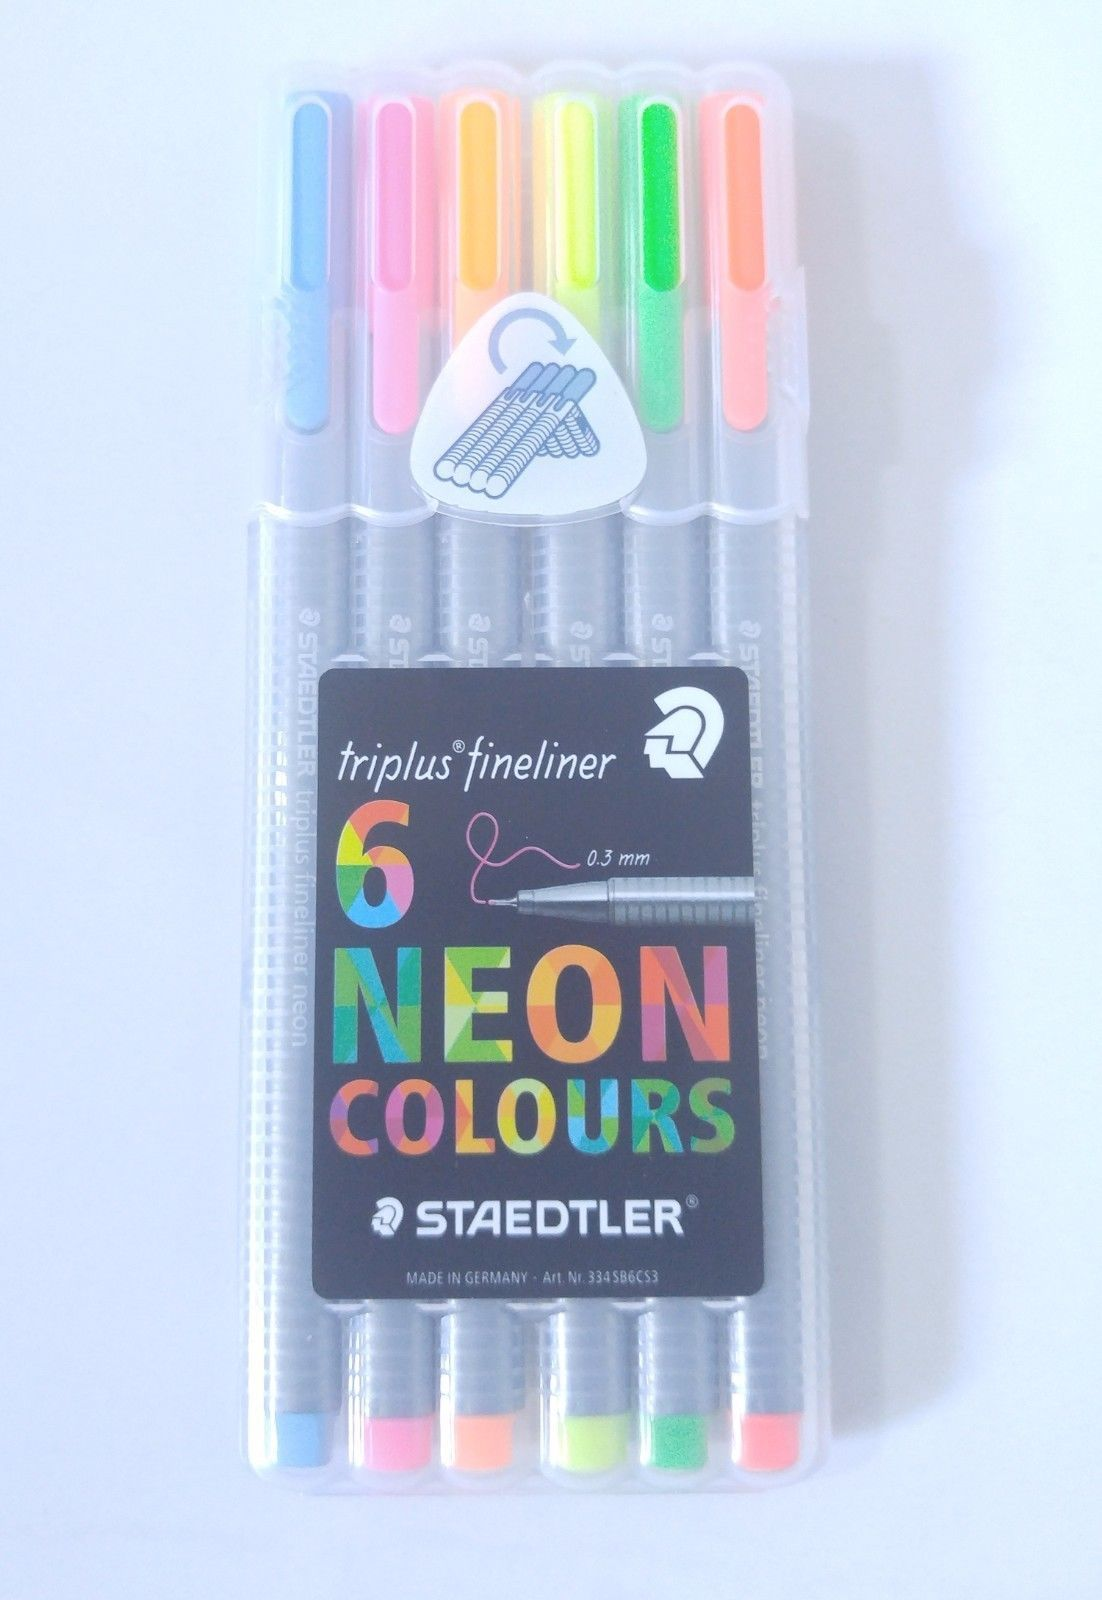 Staedtler Triplus Fineliner 334Sb6Cs3 0.3Mm 6 Assorted Neon Colors Pen Set